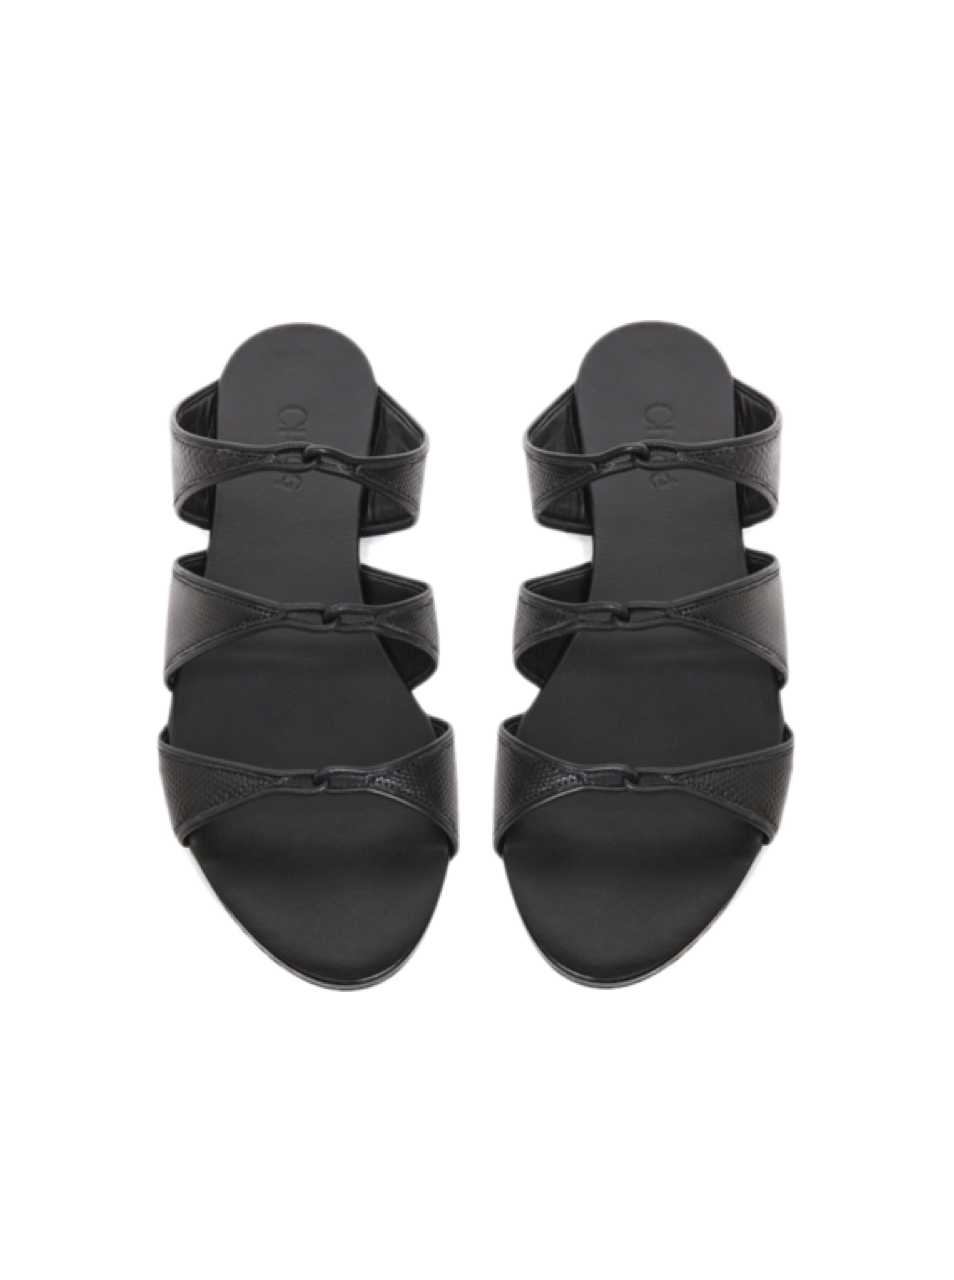 Chloe Karung Slip On Sandal in black